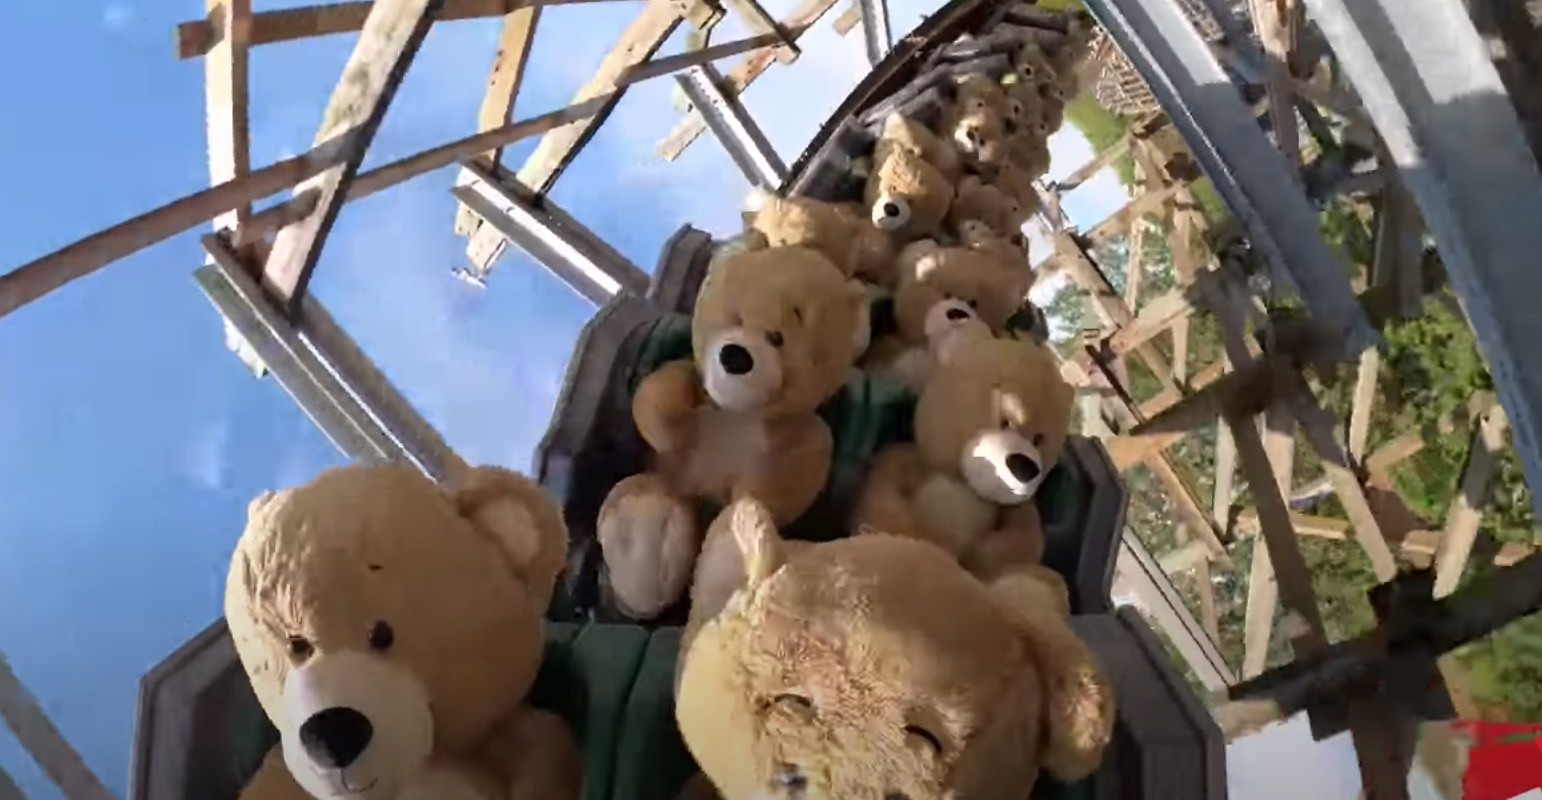 This Video Of 22 Oversized Teddy Bears Riding A Roller Coaster Is… Utterly Delightful? - Digg